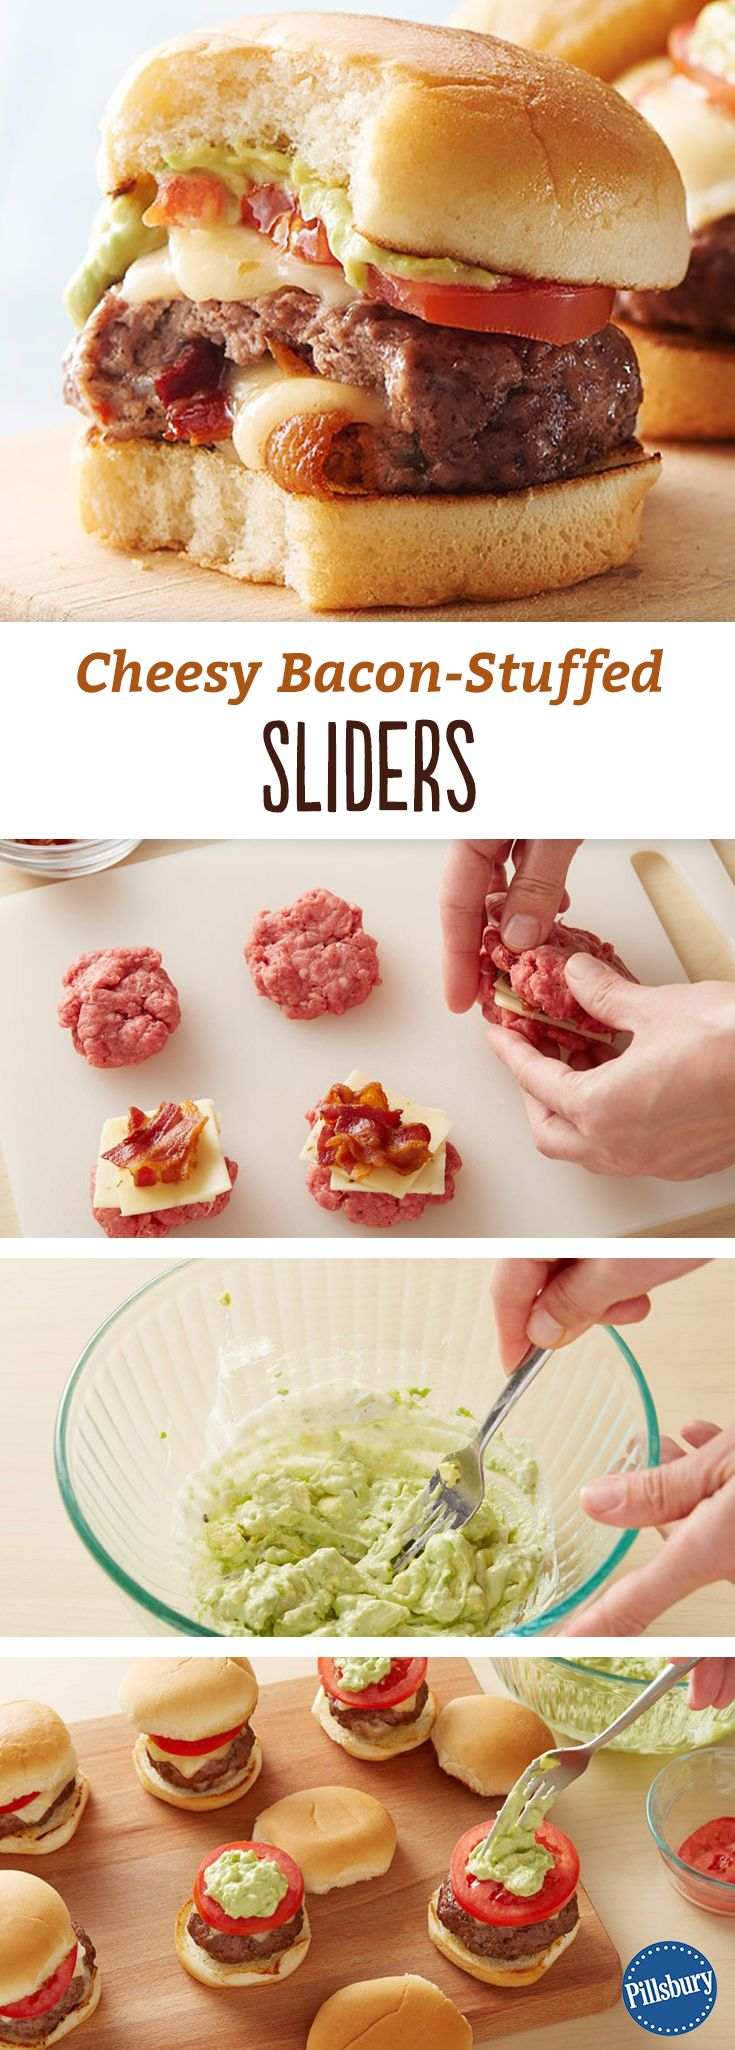 It's the most amped up mini burger you've ever had — like a Jucy Lucy slider. These easy baked pepper jack and bacon-stuffed sliders are sure to become a family favorite.